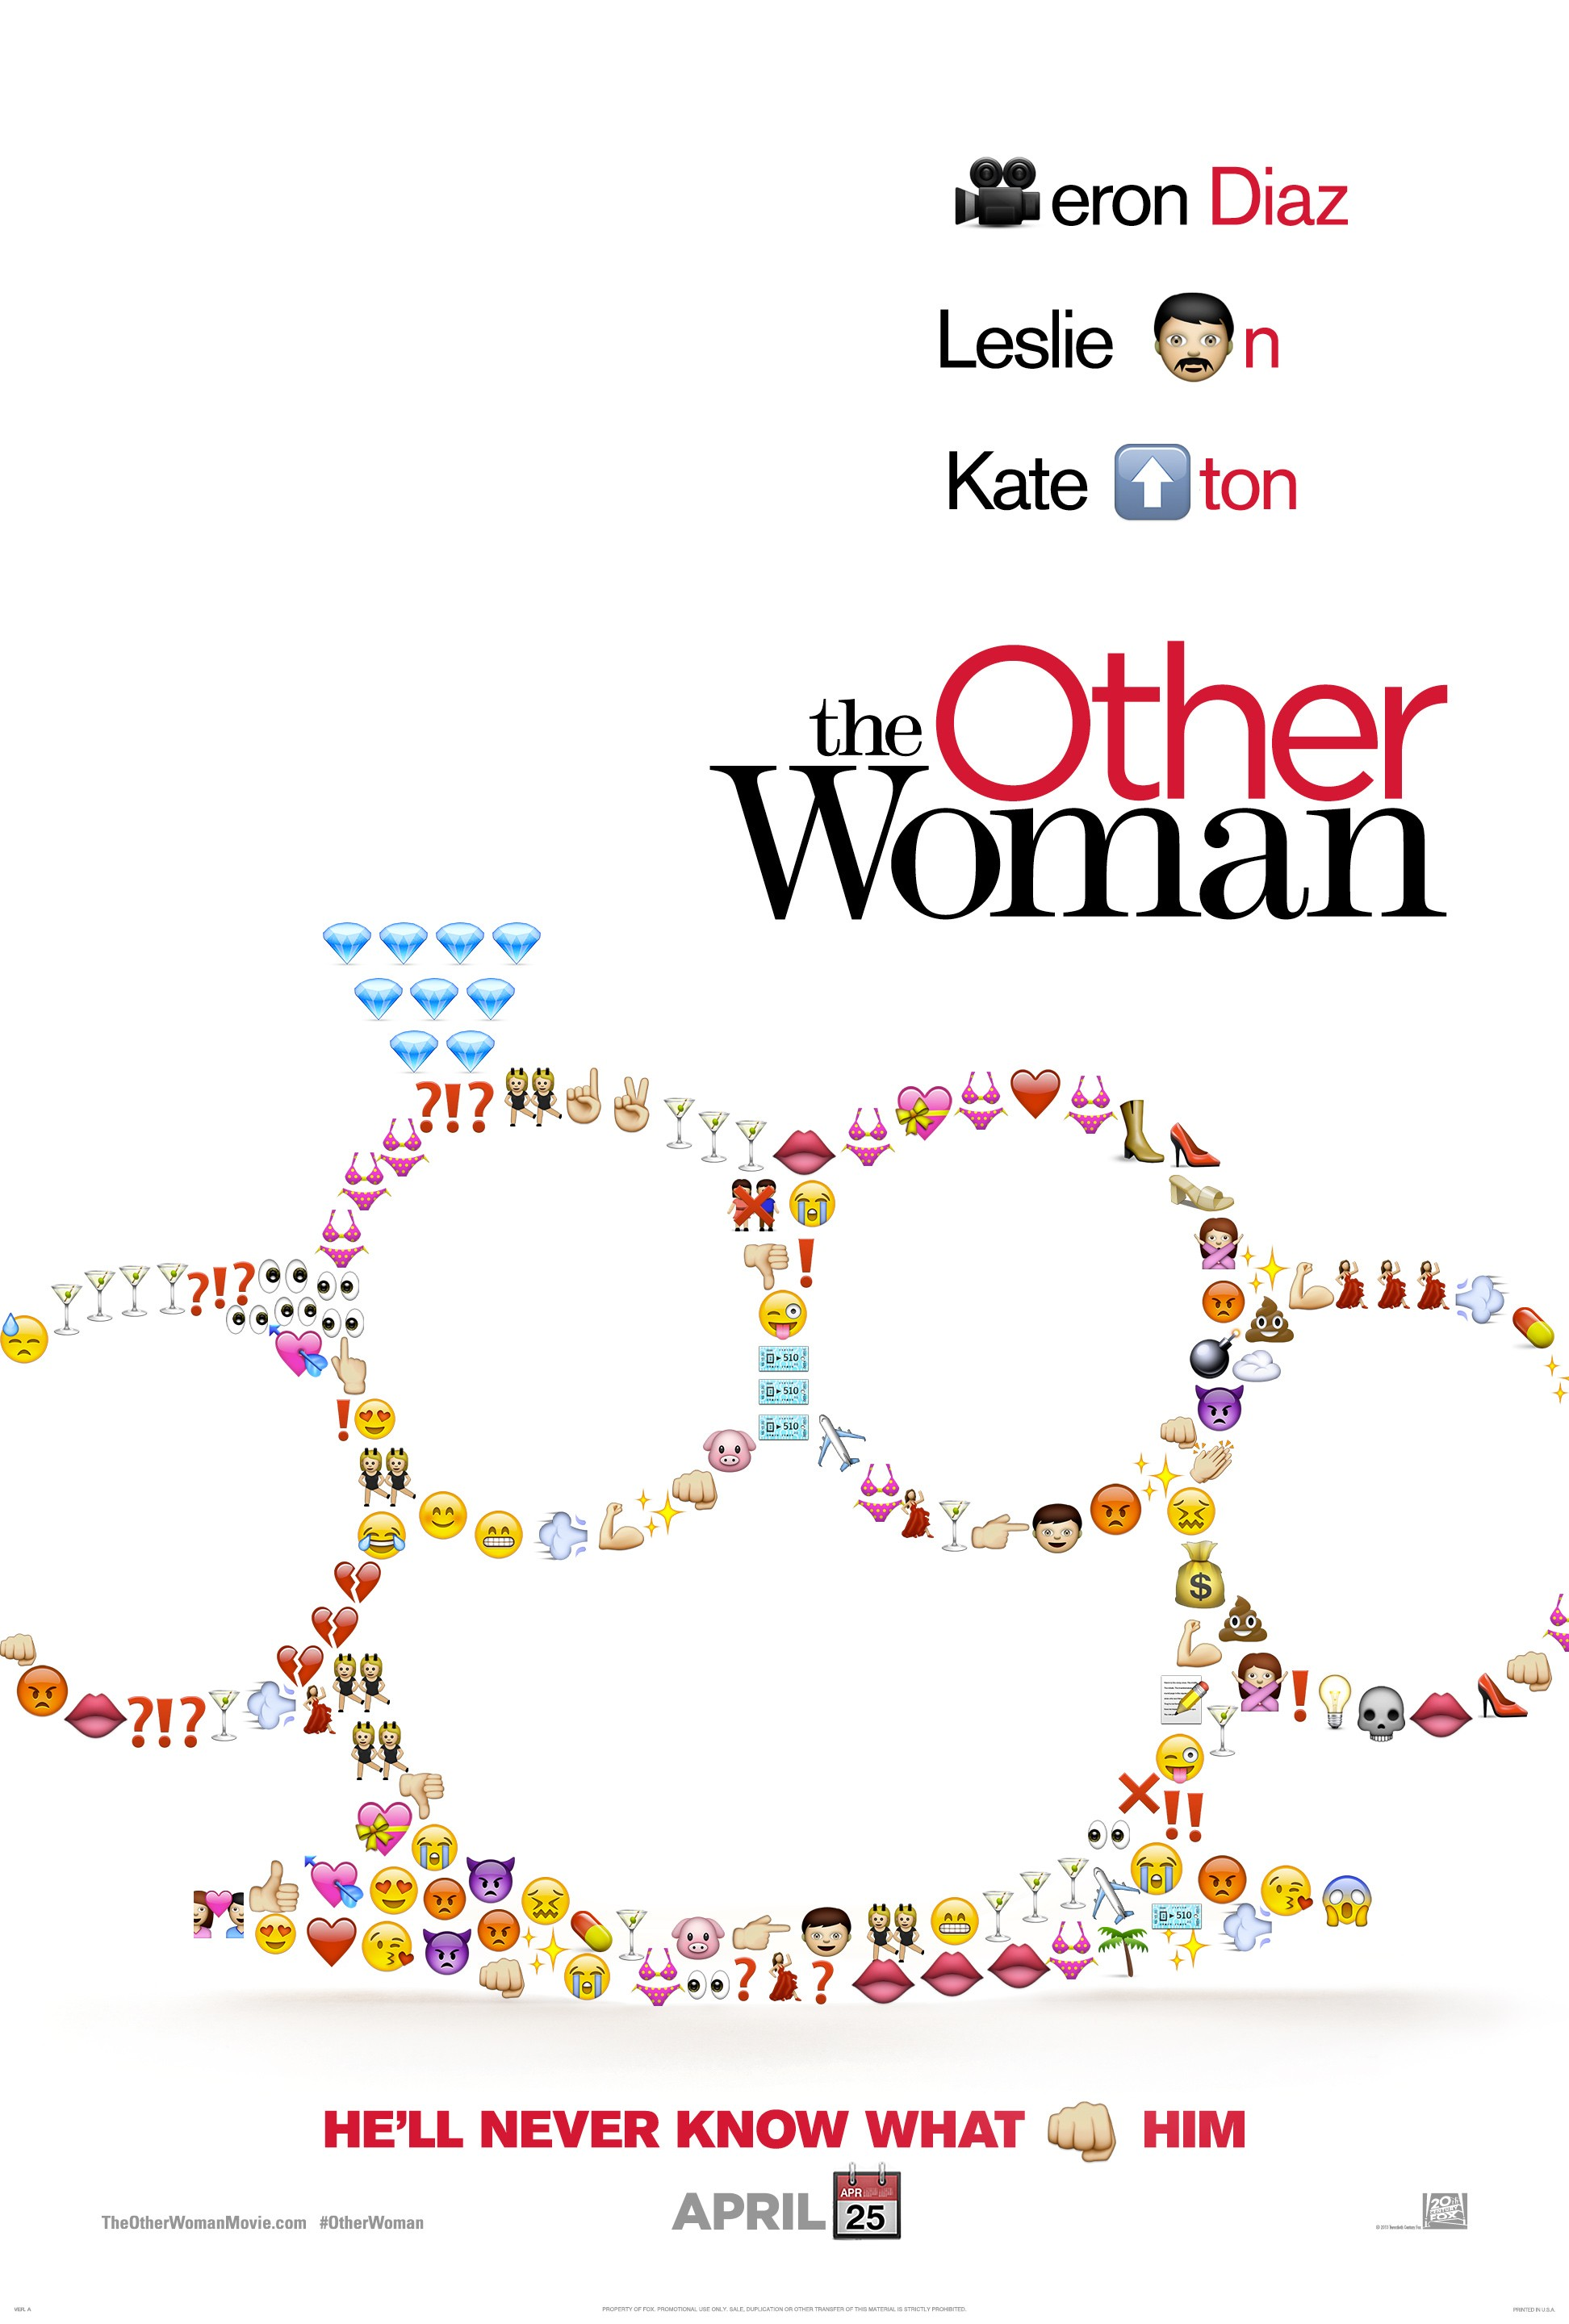 The Other Woman-Official Poster Banner PROMO XXLG-31MARCO2014